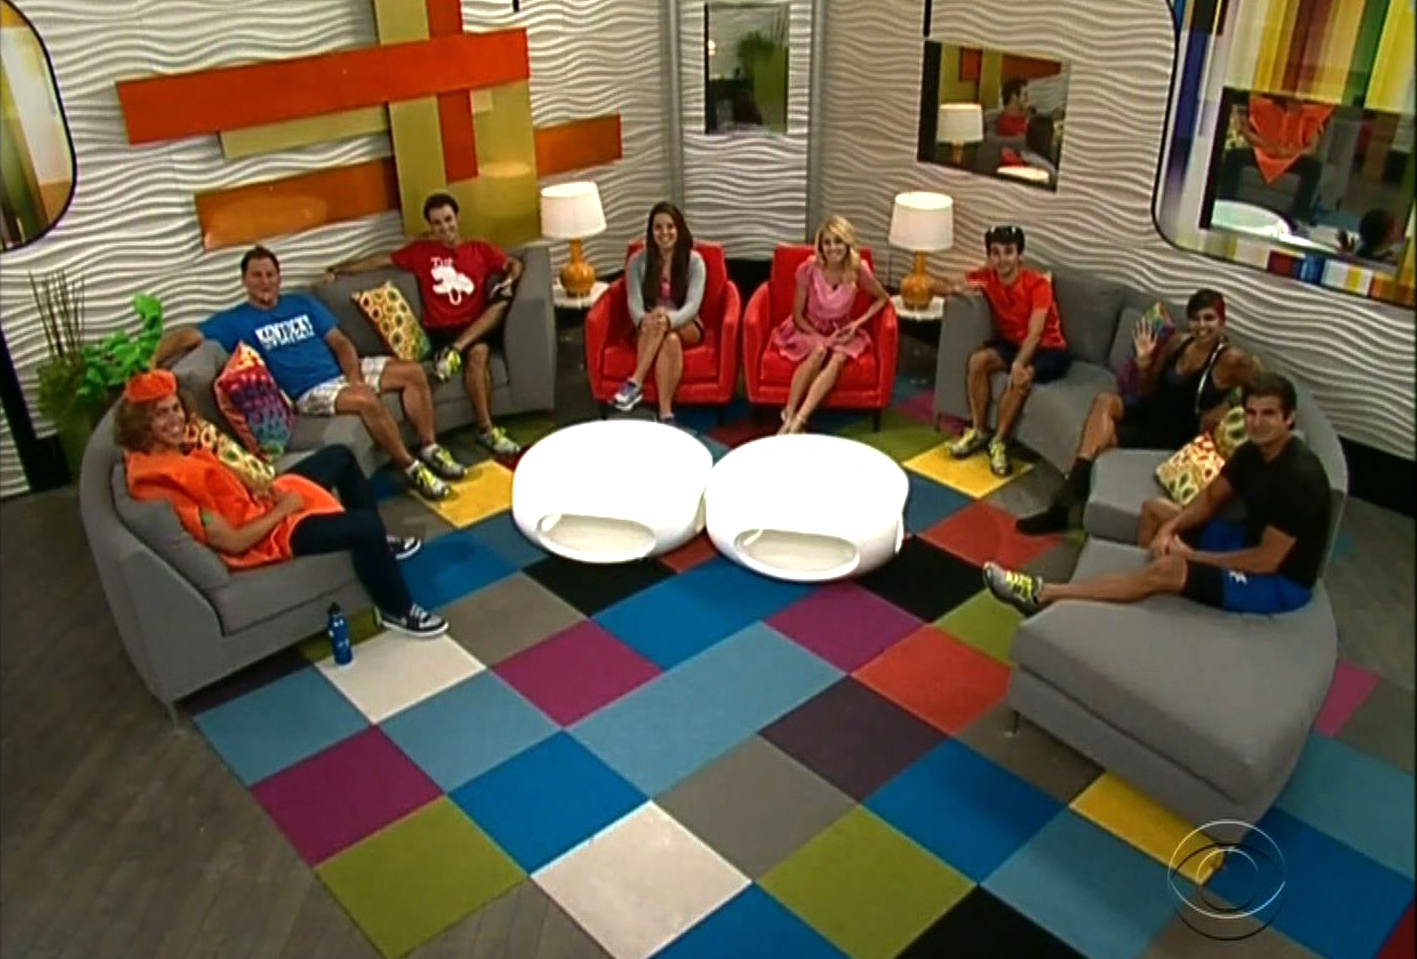 Before Eviction